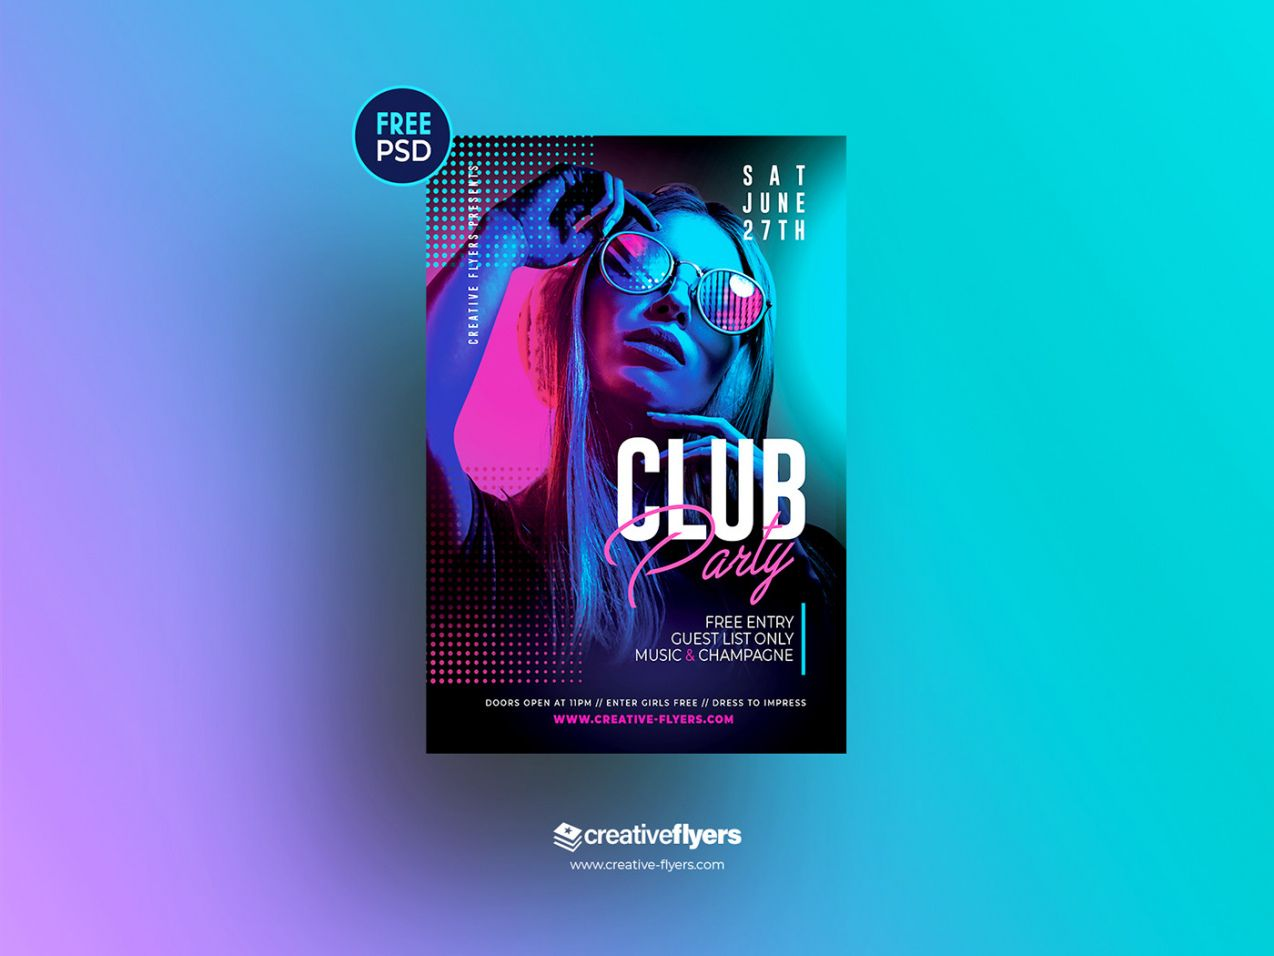 printable free psd flyer template for night club on behance nightclub poster template excel